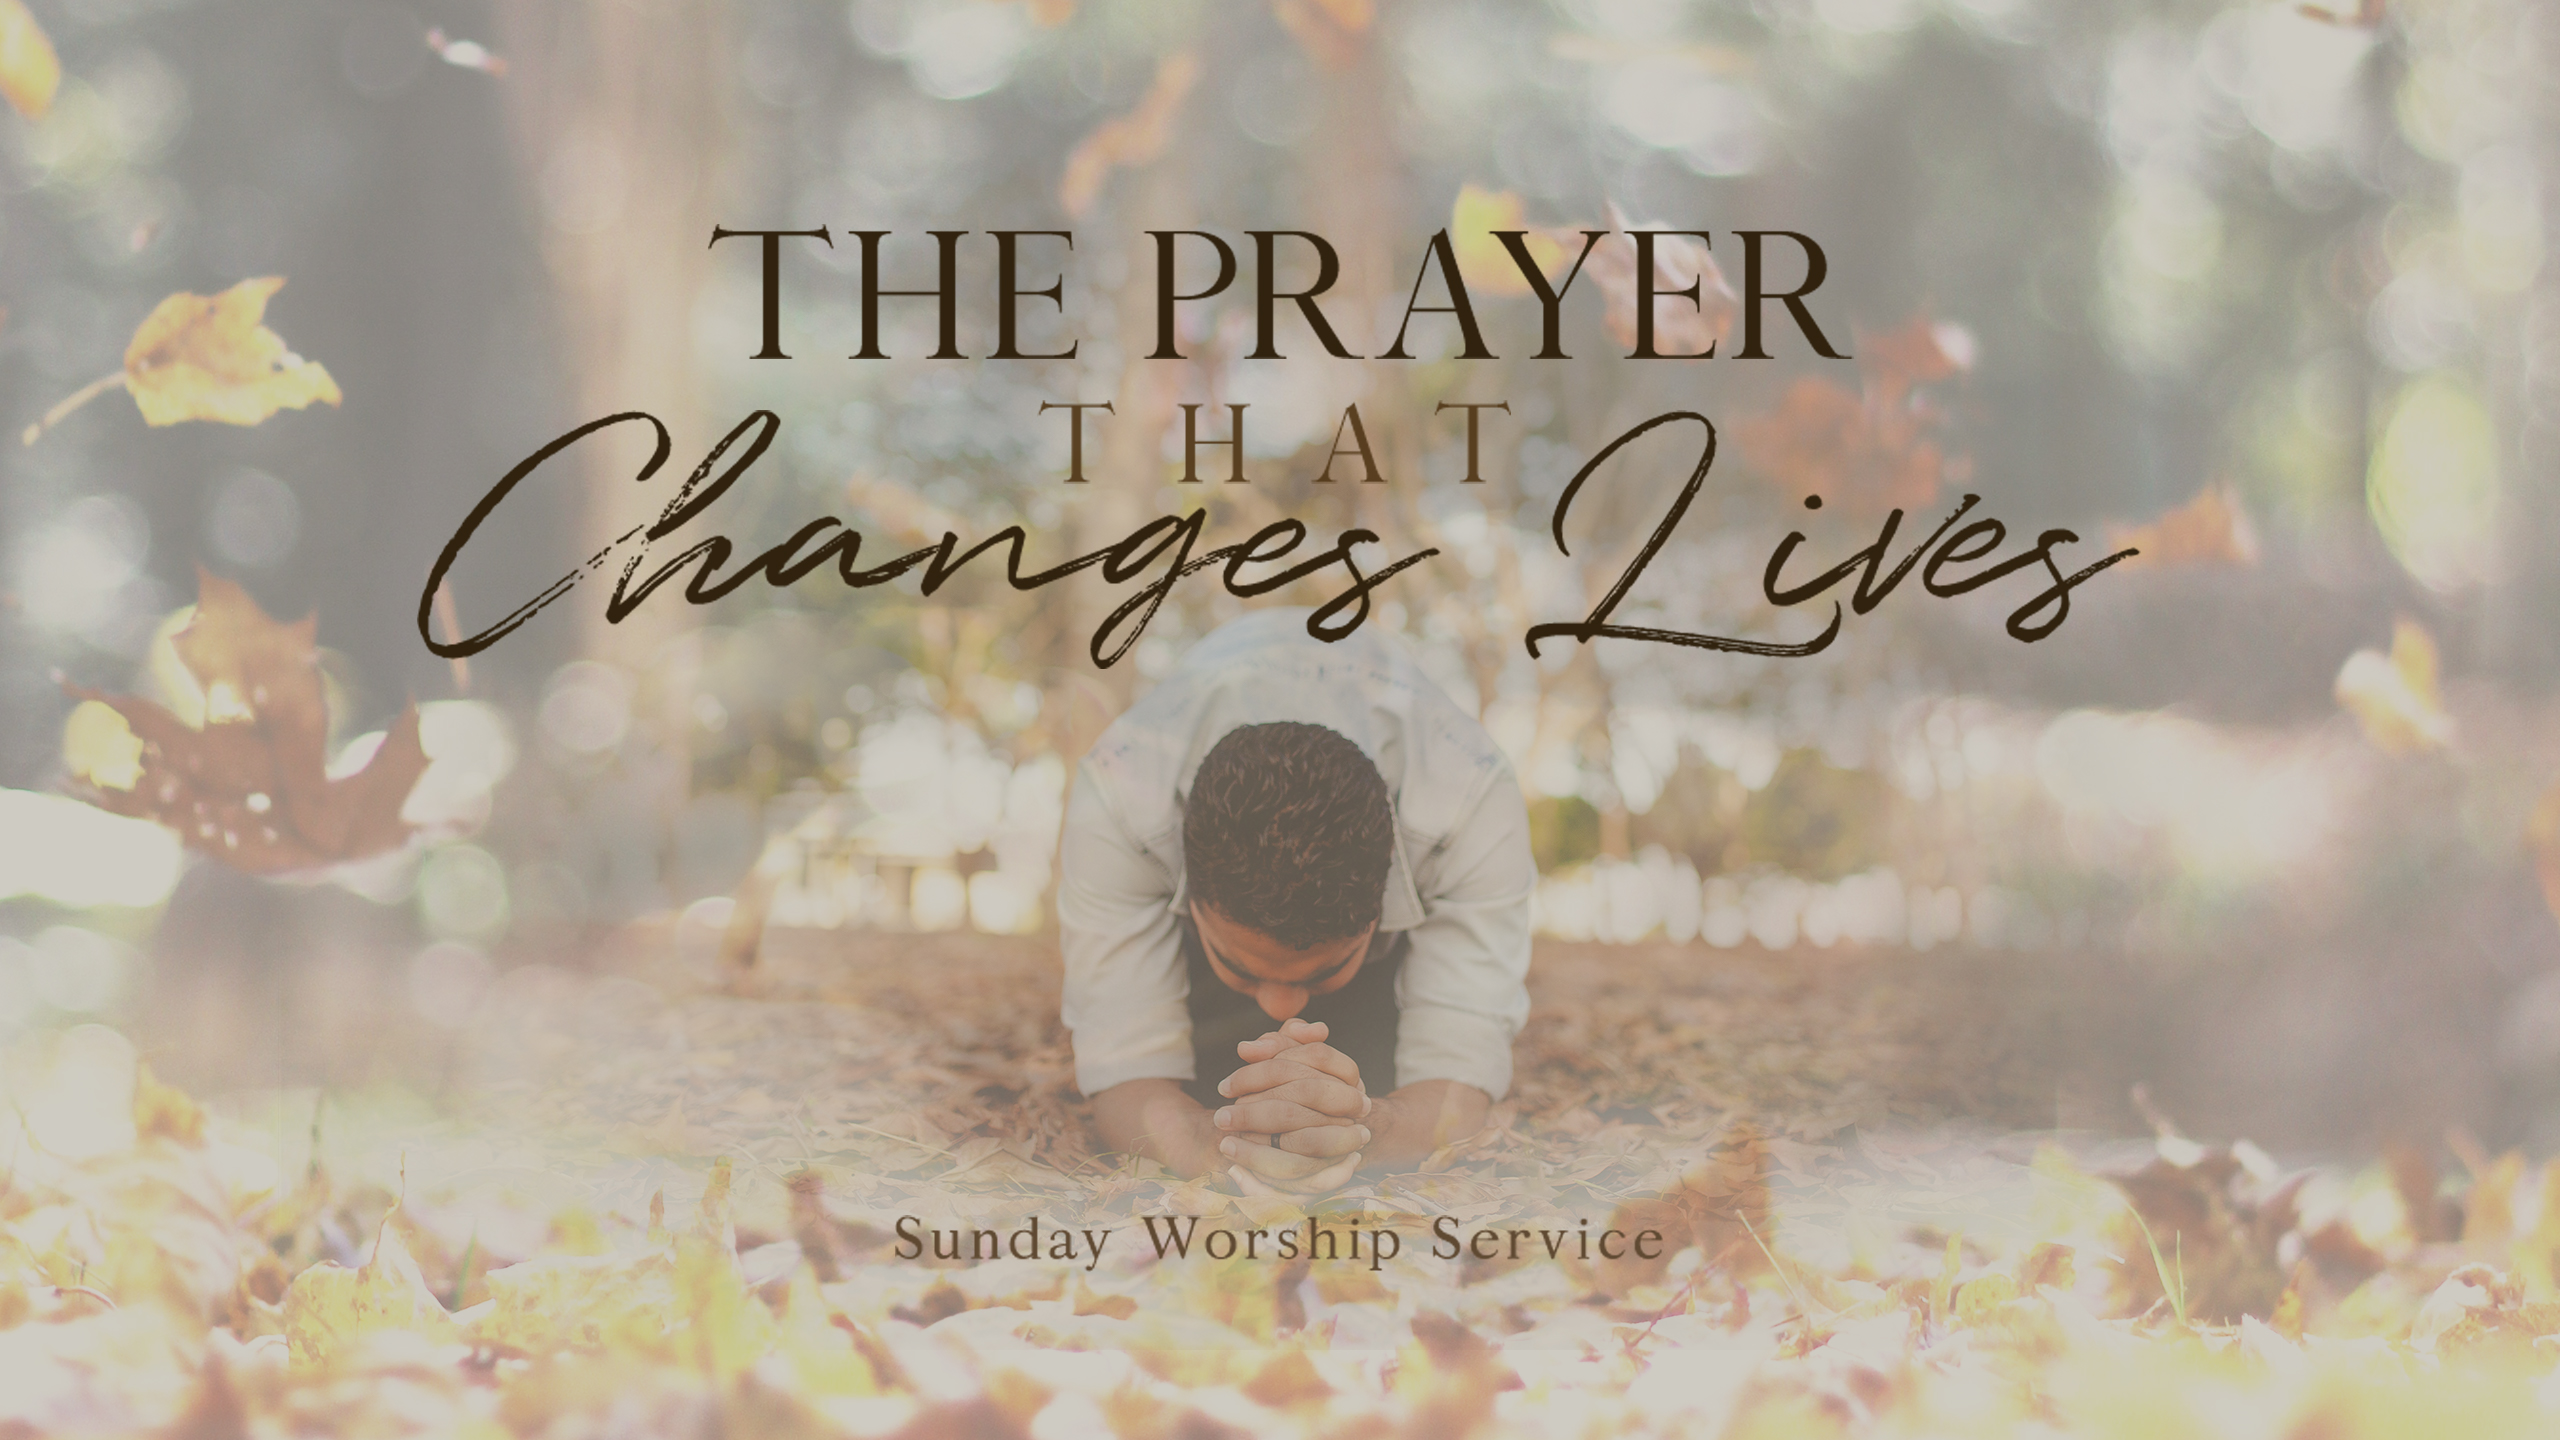 The Prayer That Changes Lives